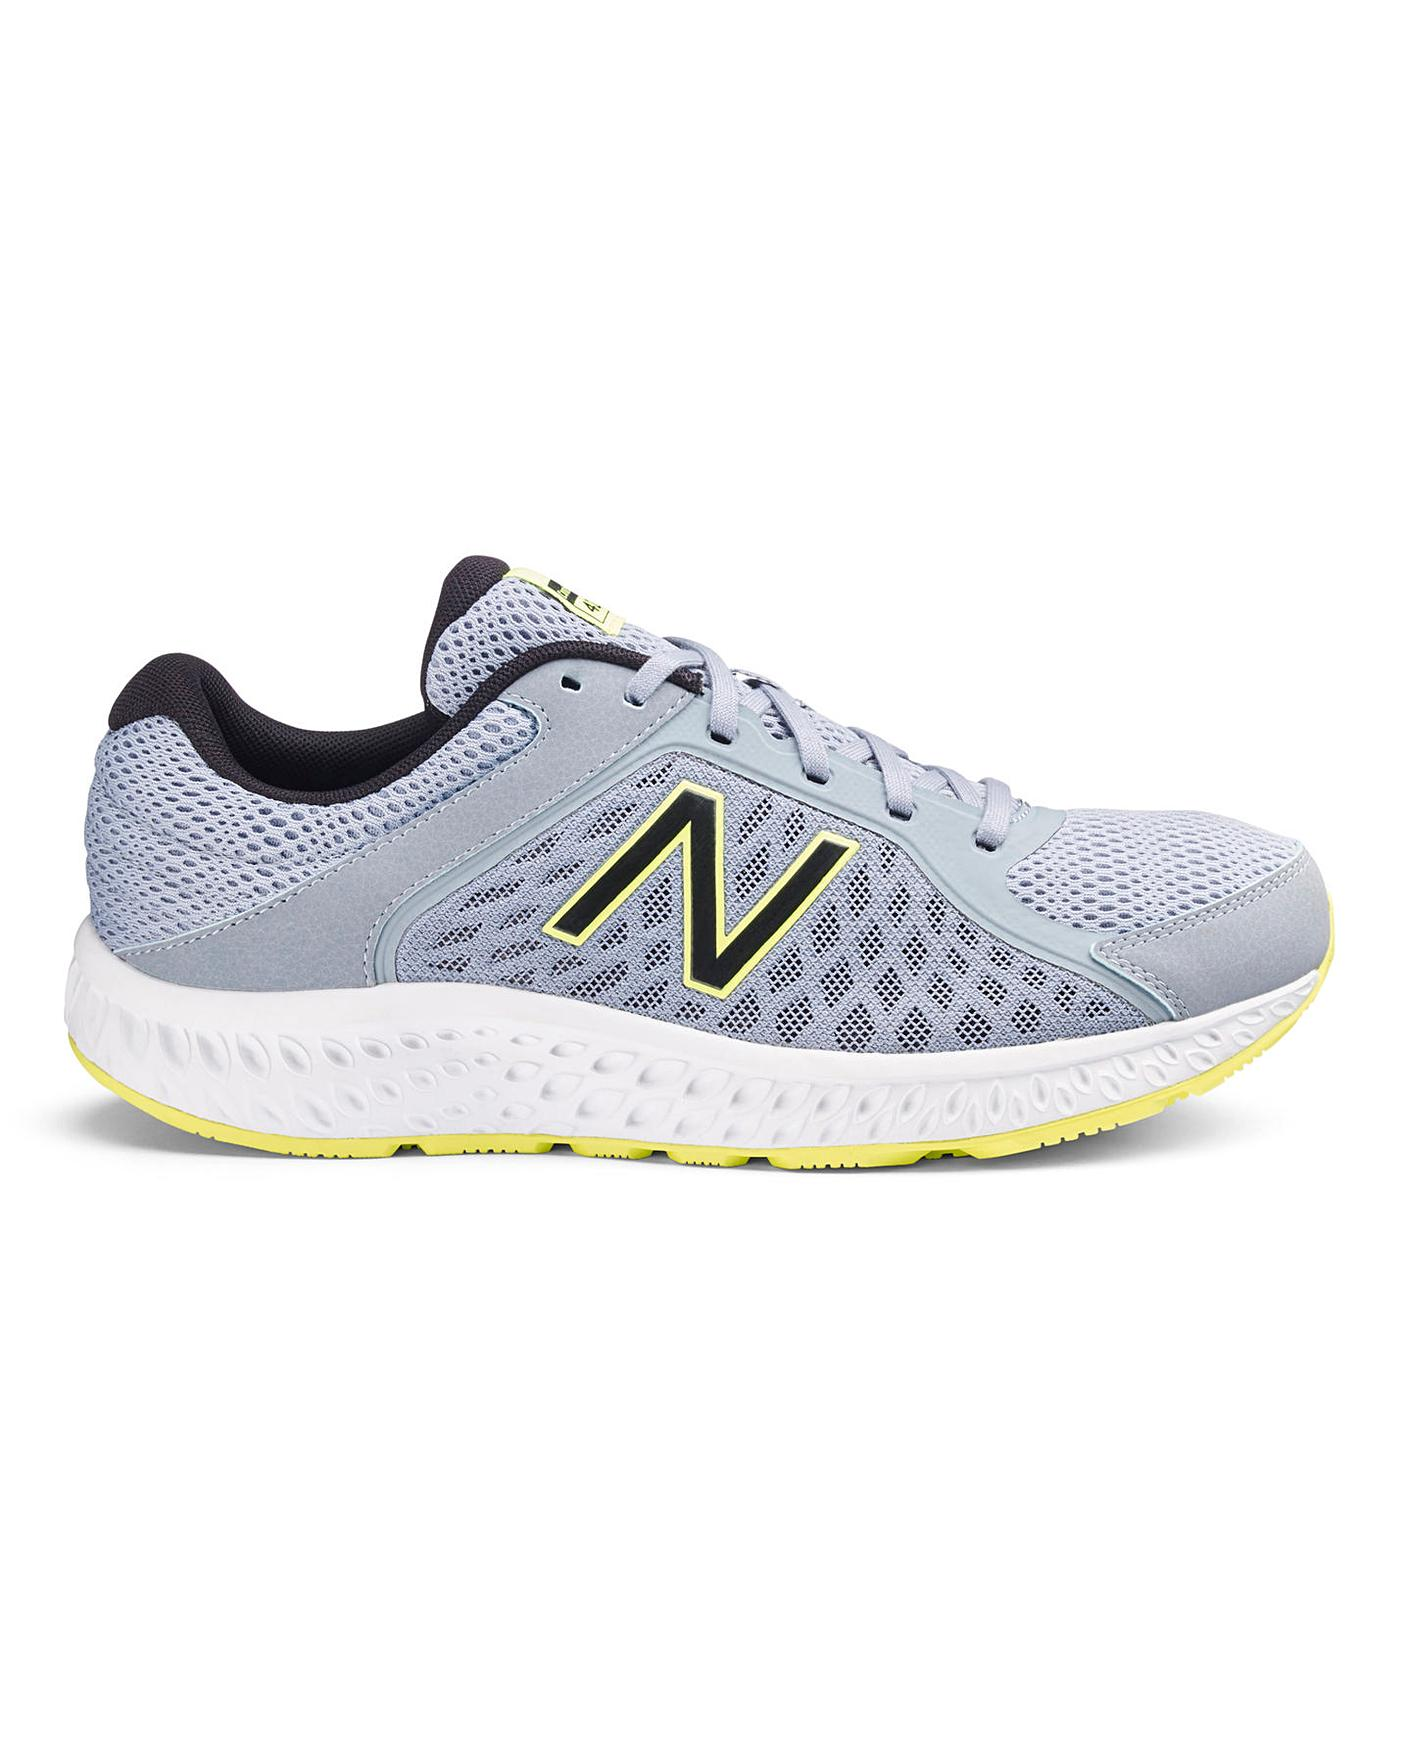 reputable site fresh styles no sale tax New Balance 420 Trainers